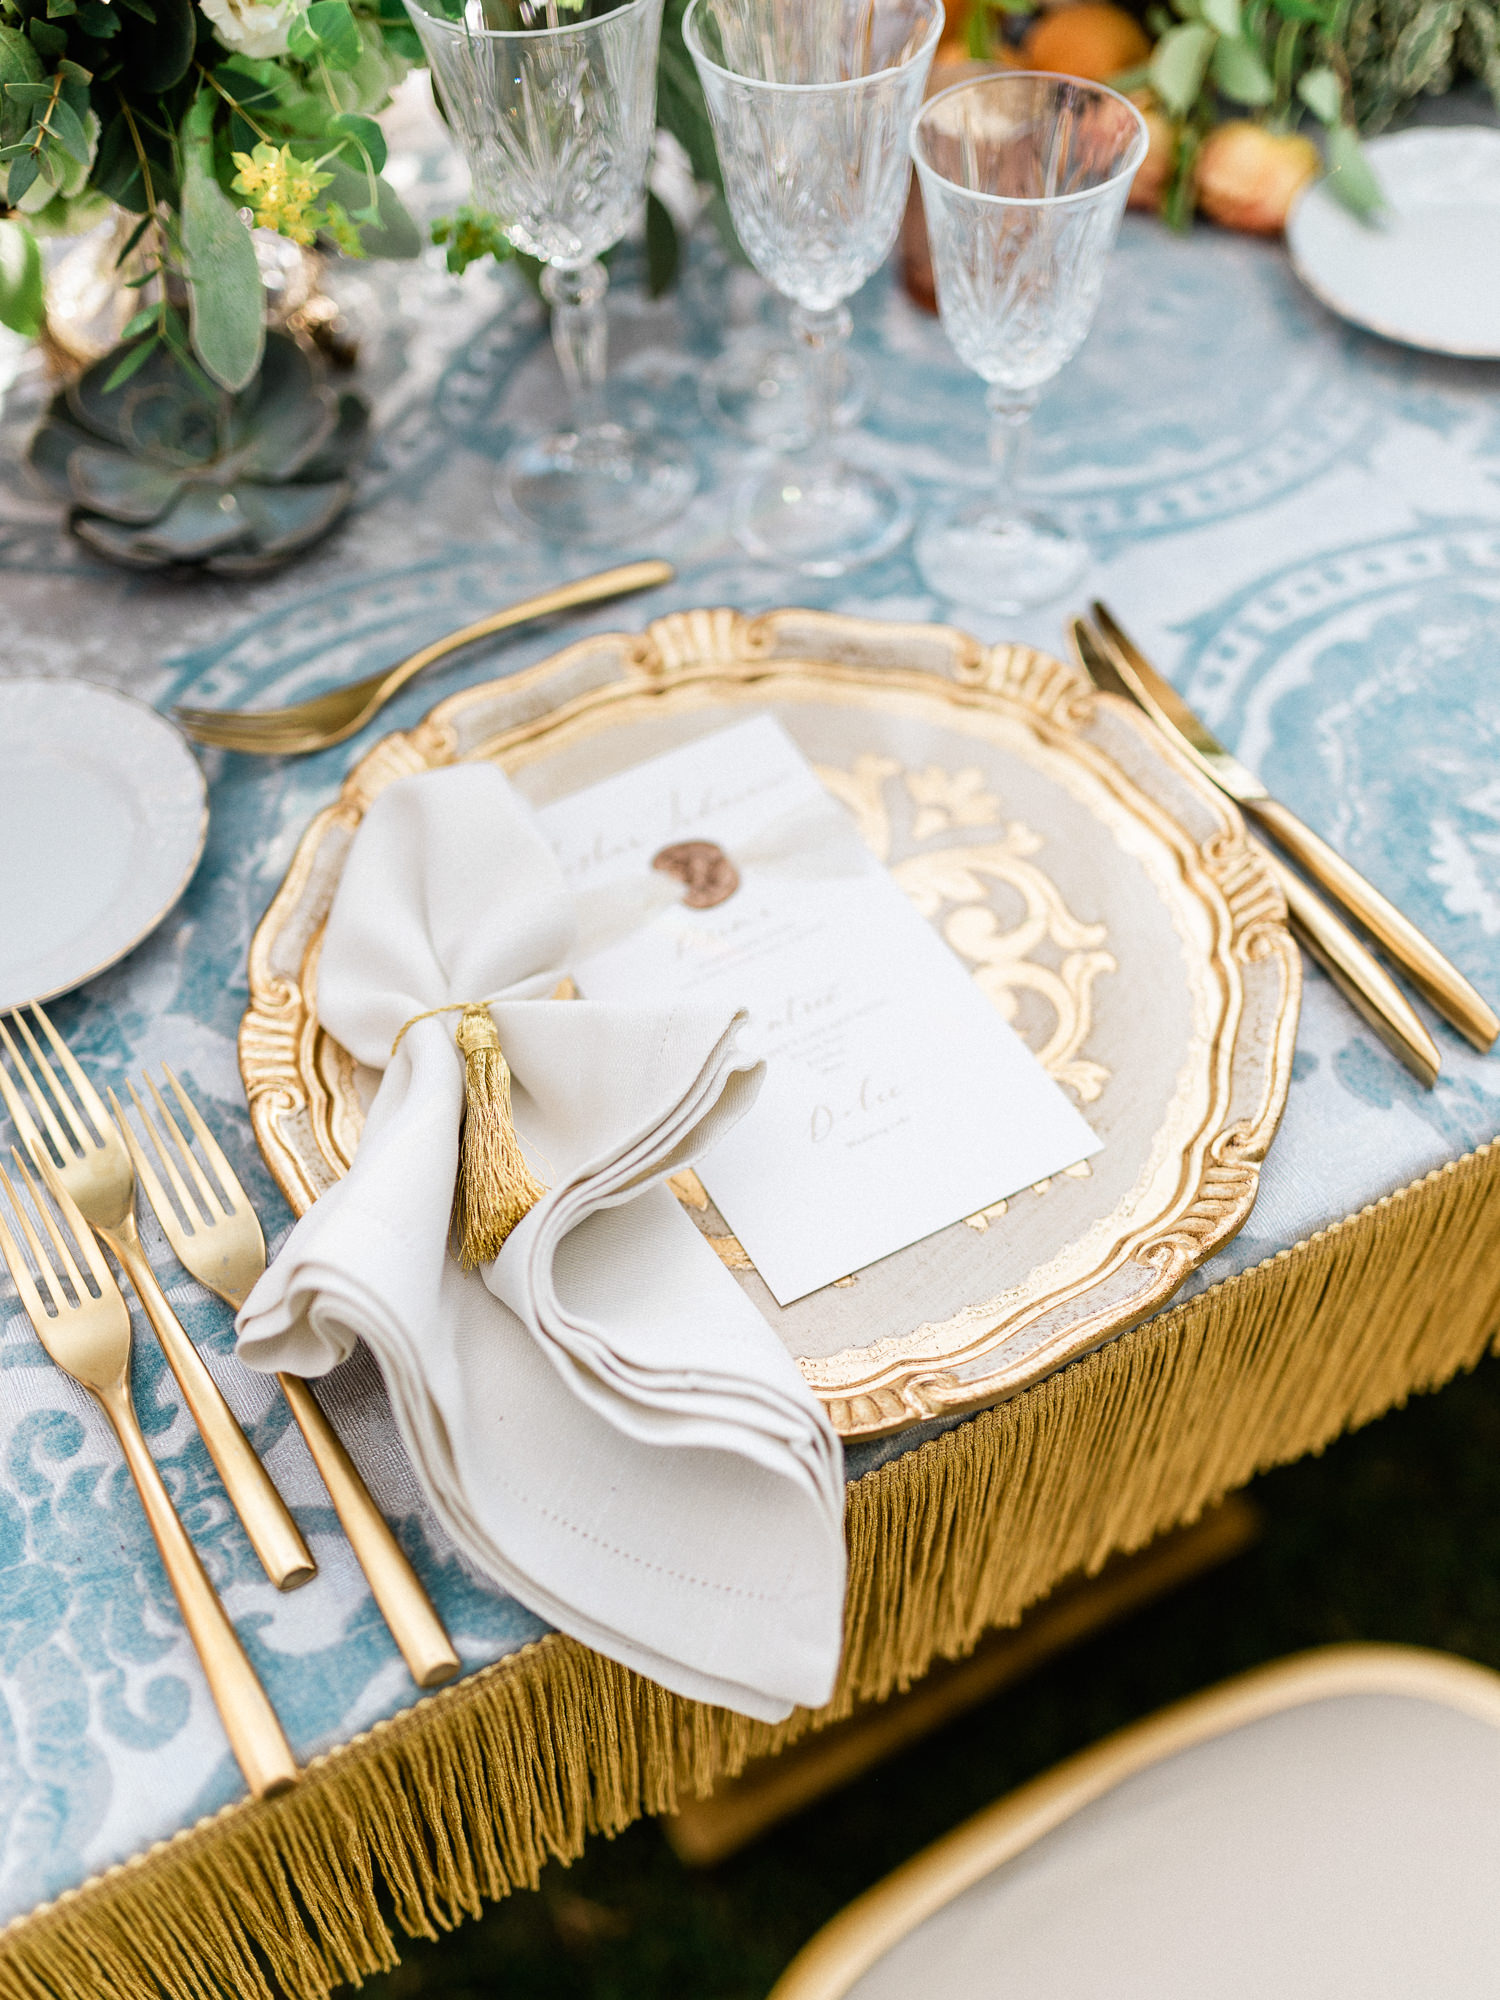 gold-trim-blue-renissance-table-with-gold-trimmed-plates-silverware-worlds-best-wedding-photos-gianluca-adiovaso-italy-wedding-photographers